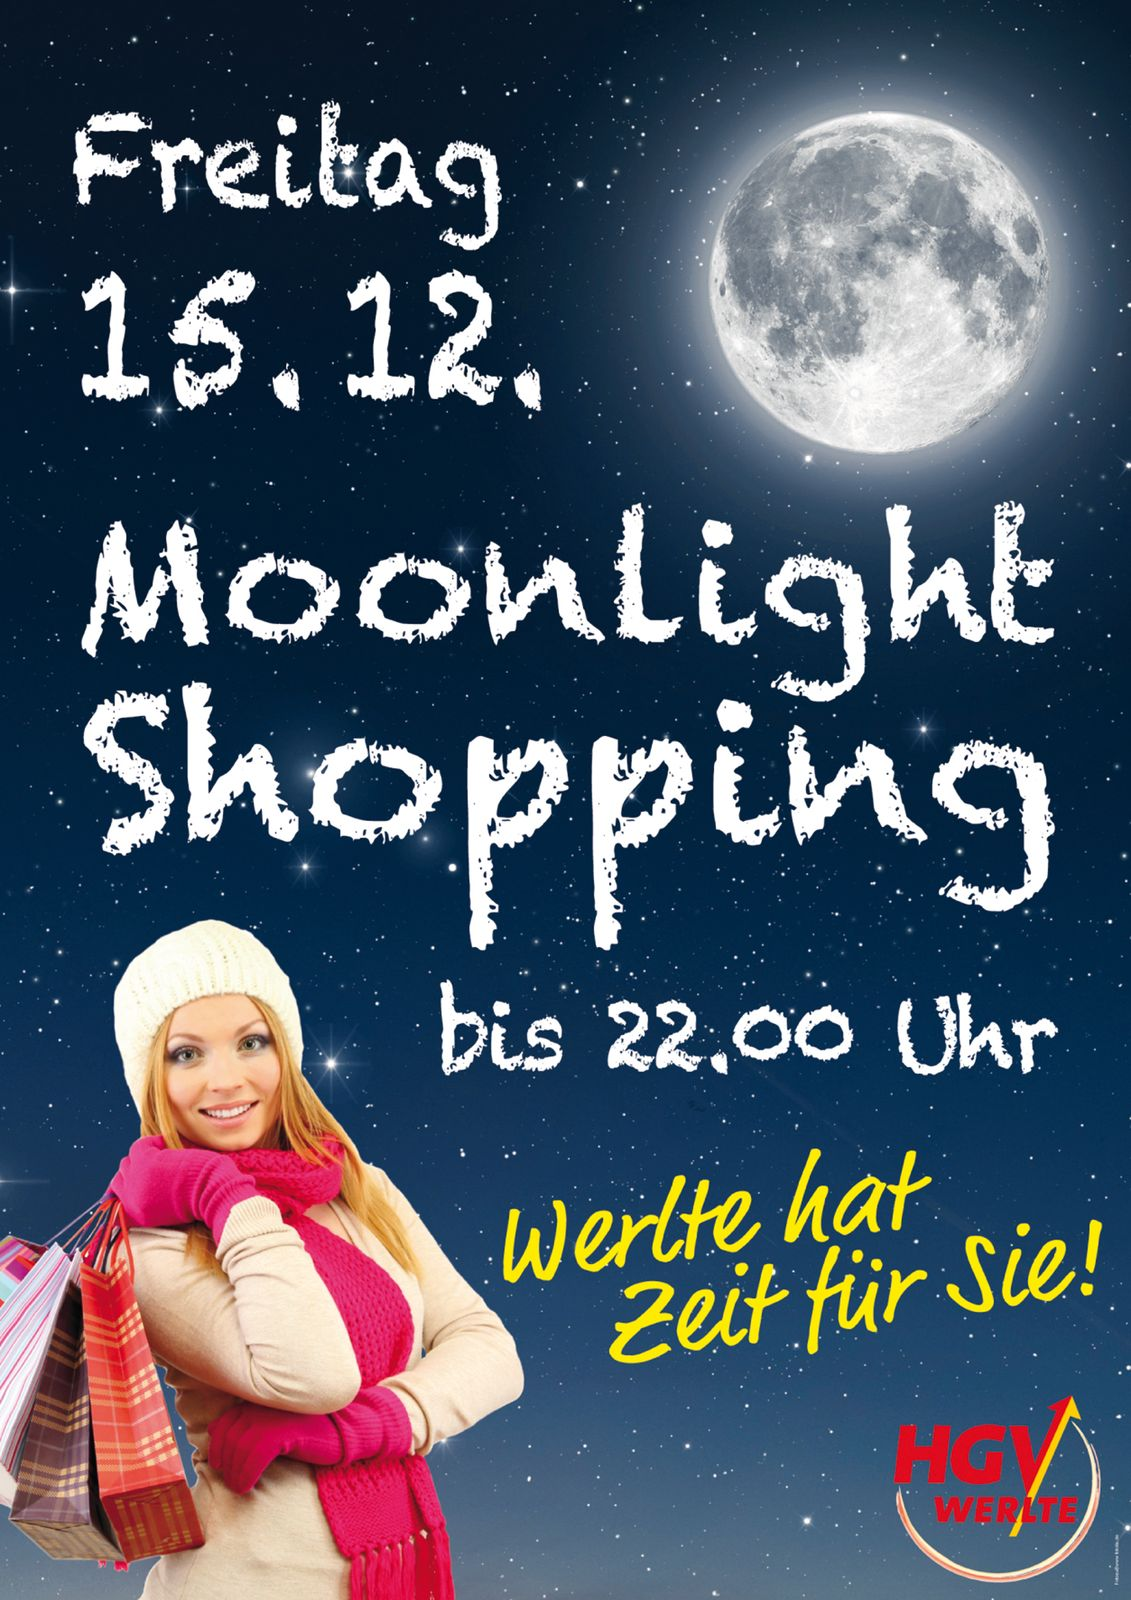 Moonlight Shopping 2017 in Werlte